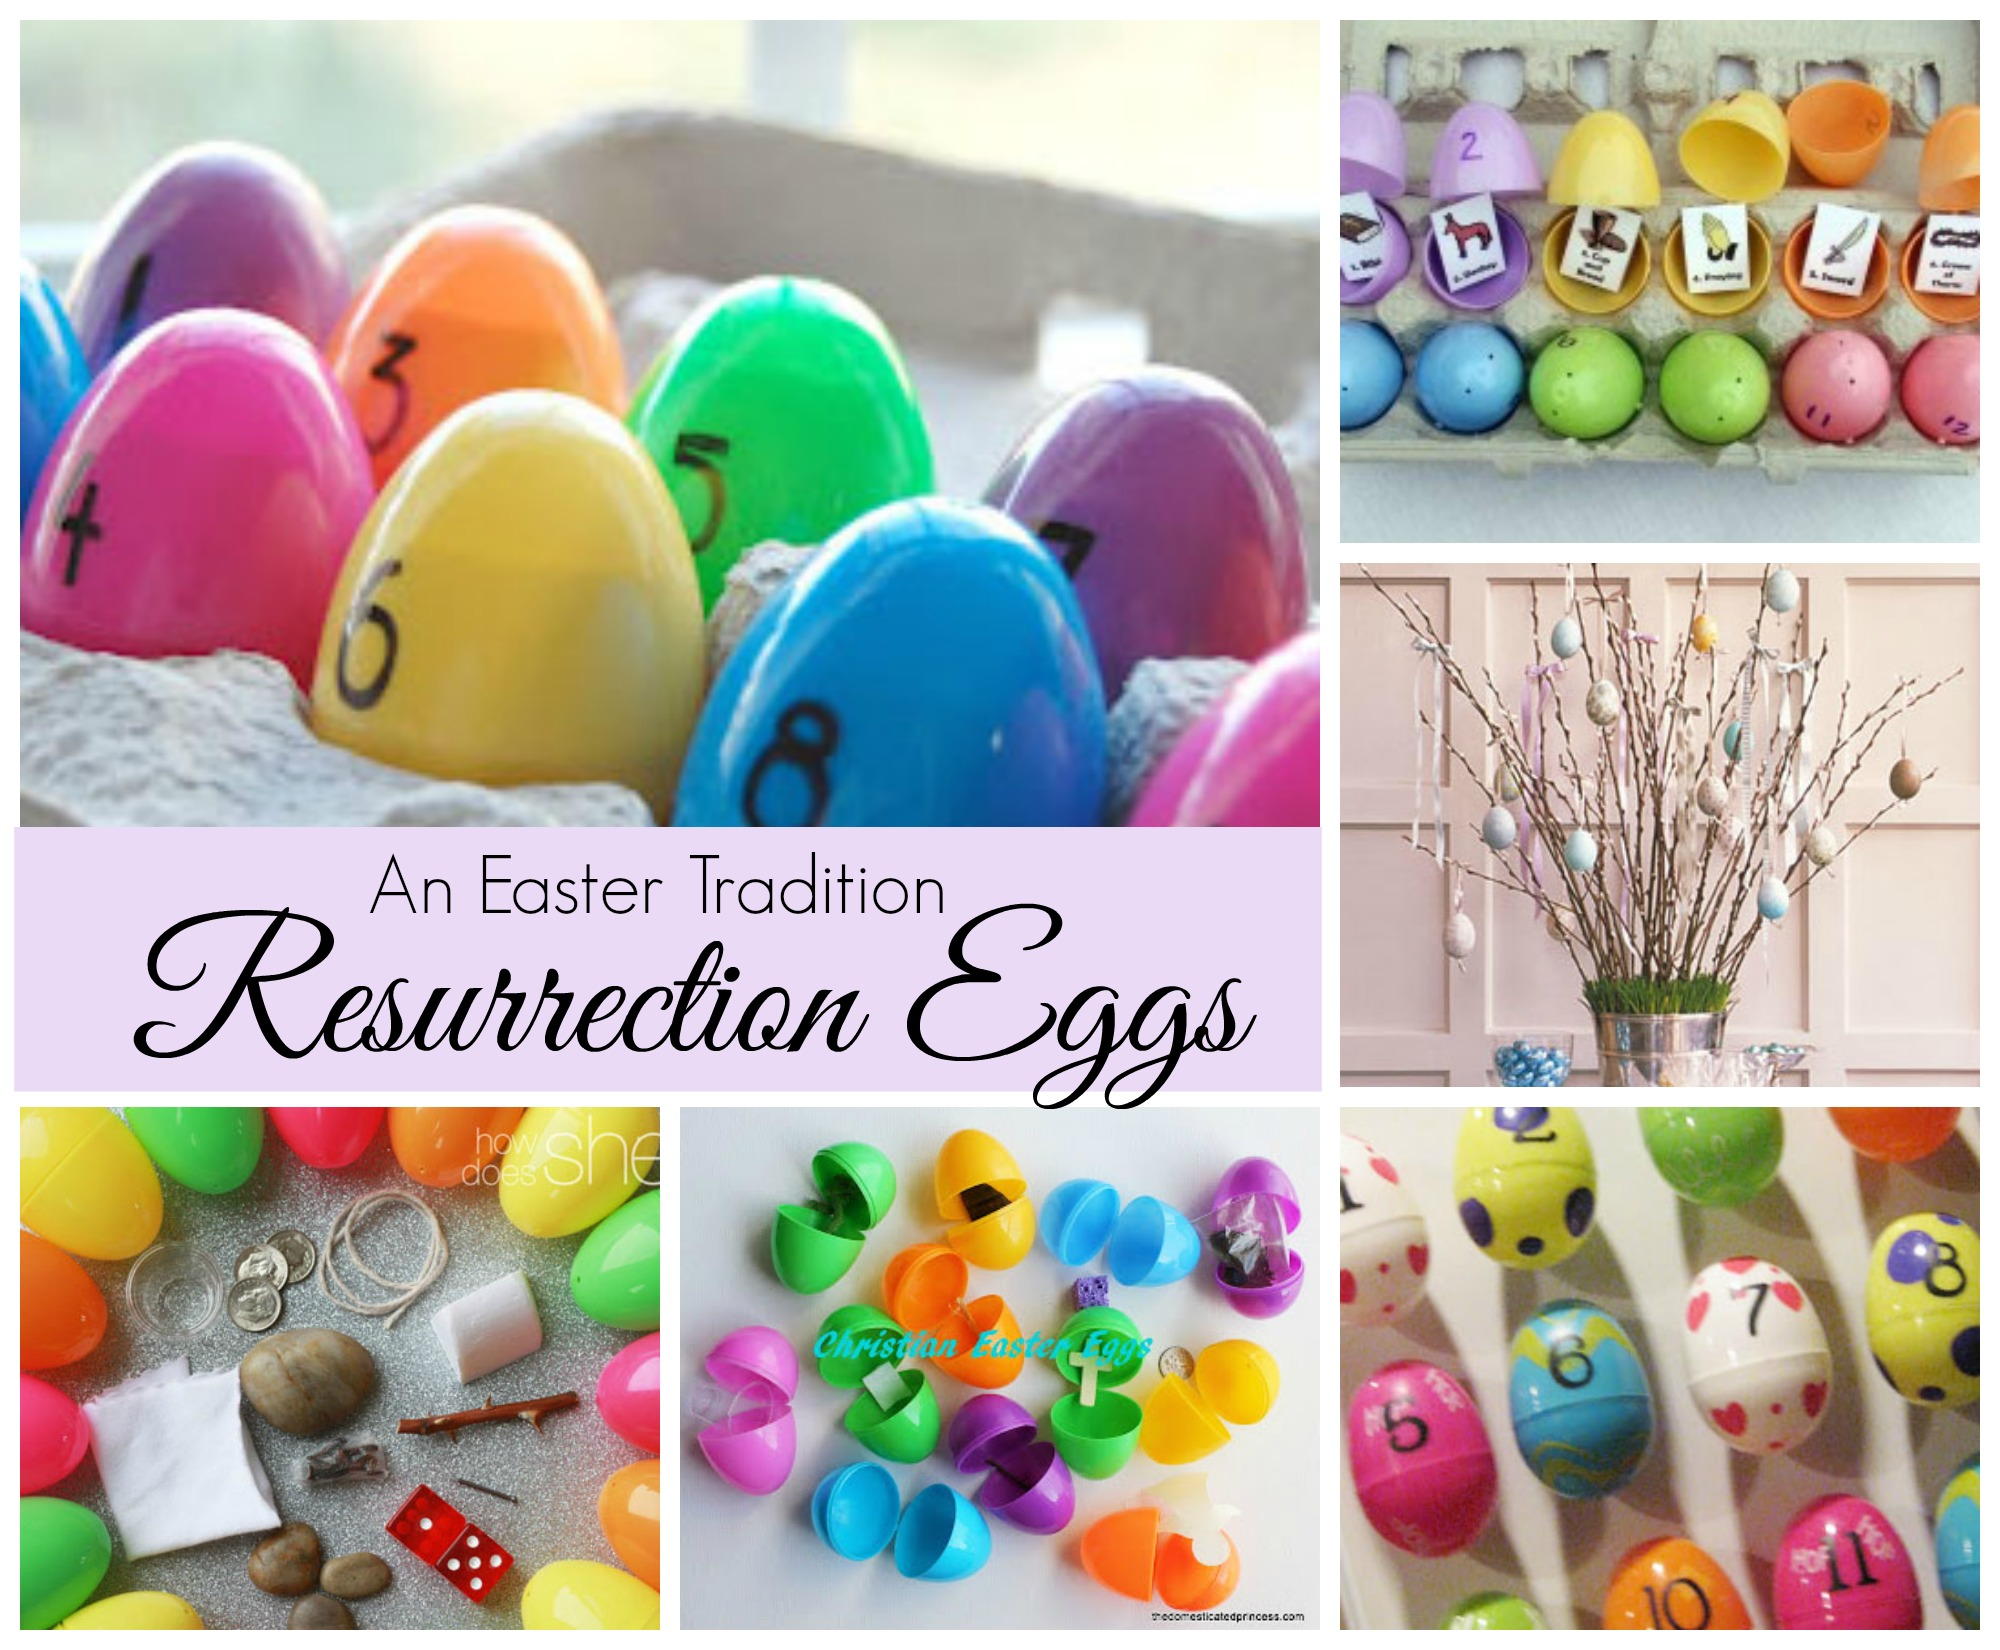 image about Resurrection Egg Story Printable identified as Resurrection Eggs for Easter Celebrating Vacations